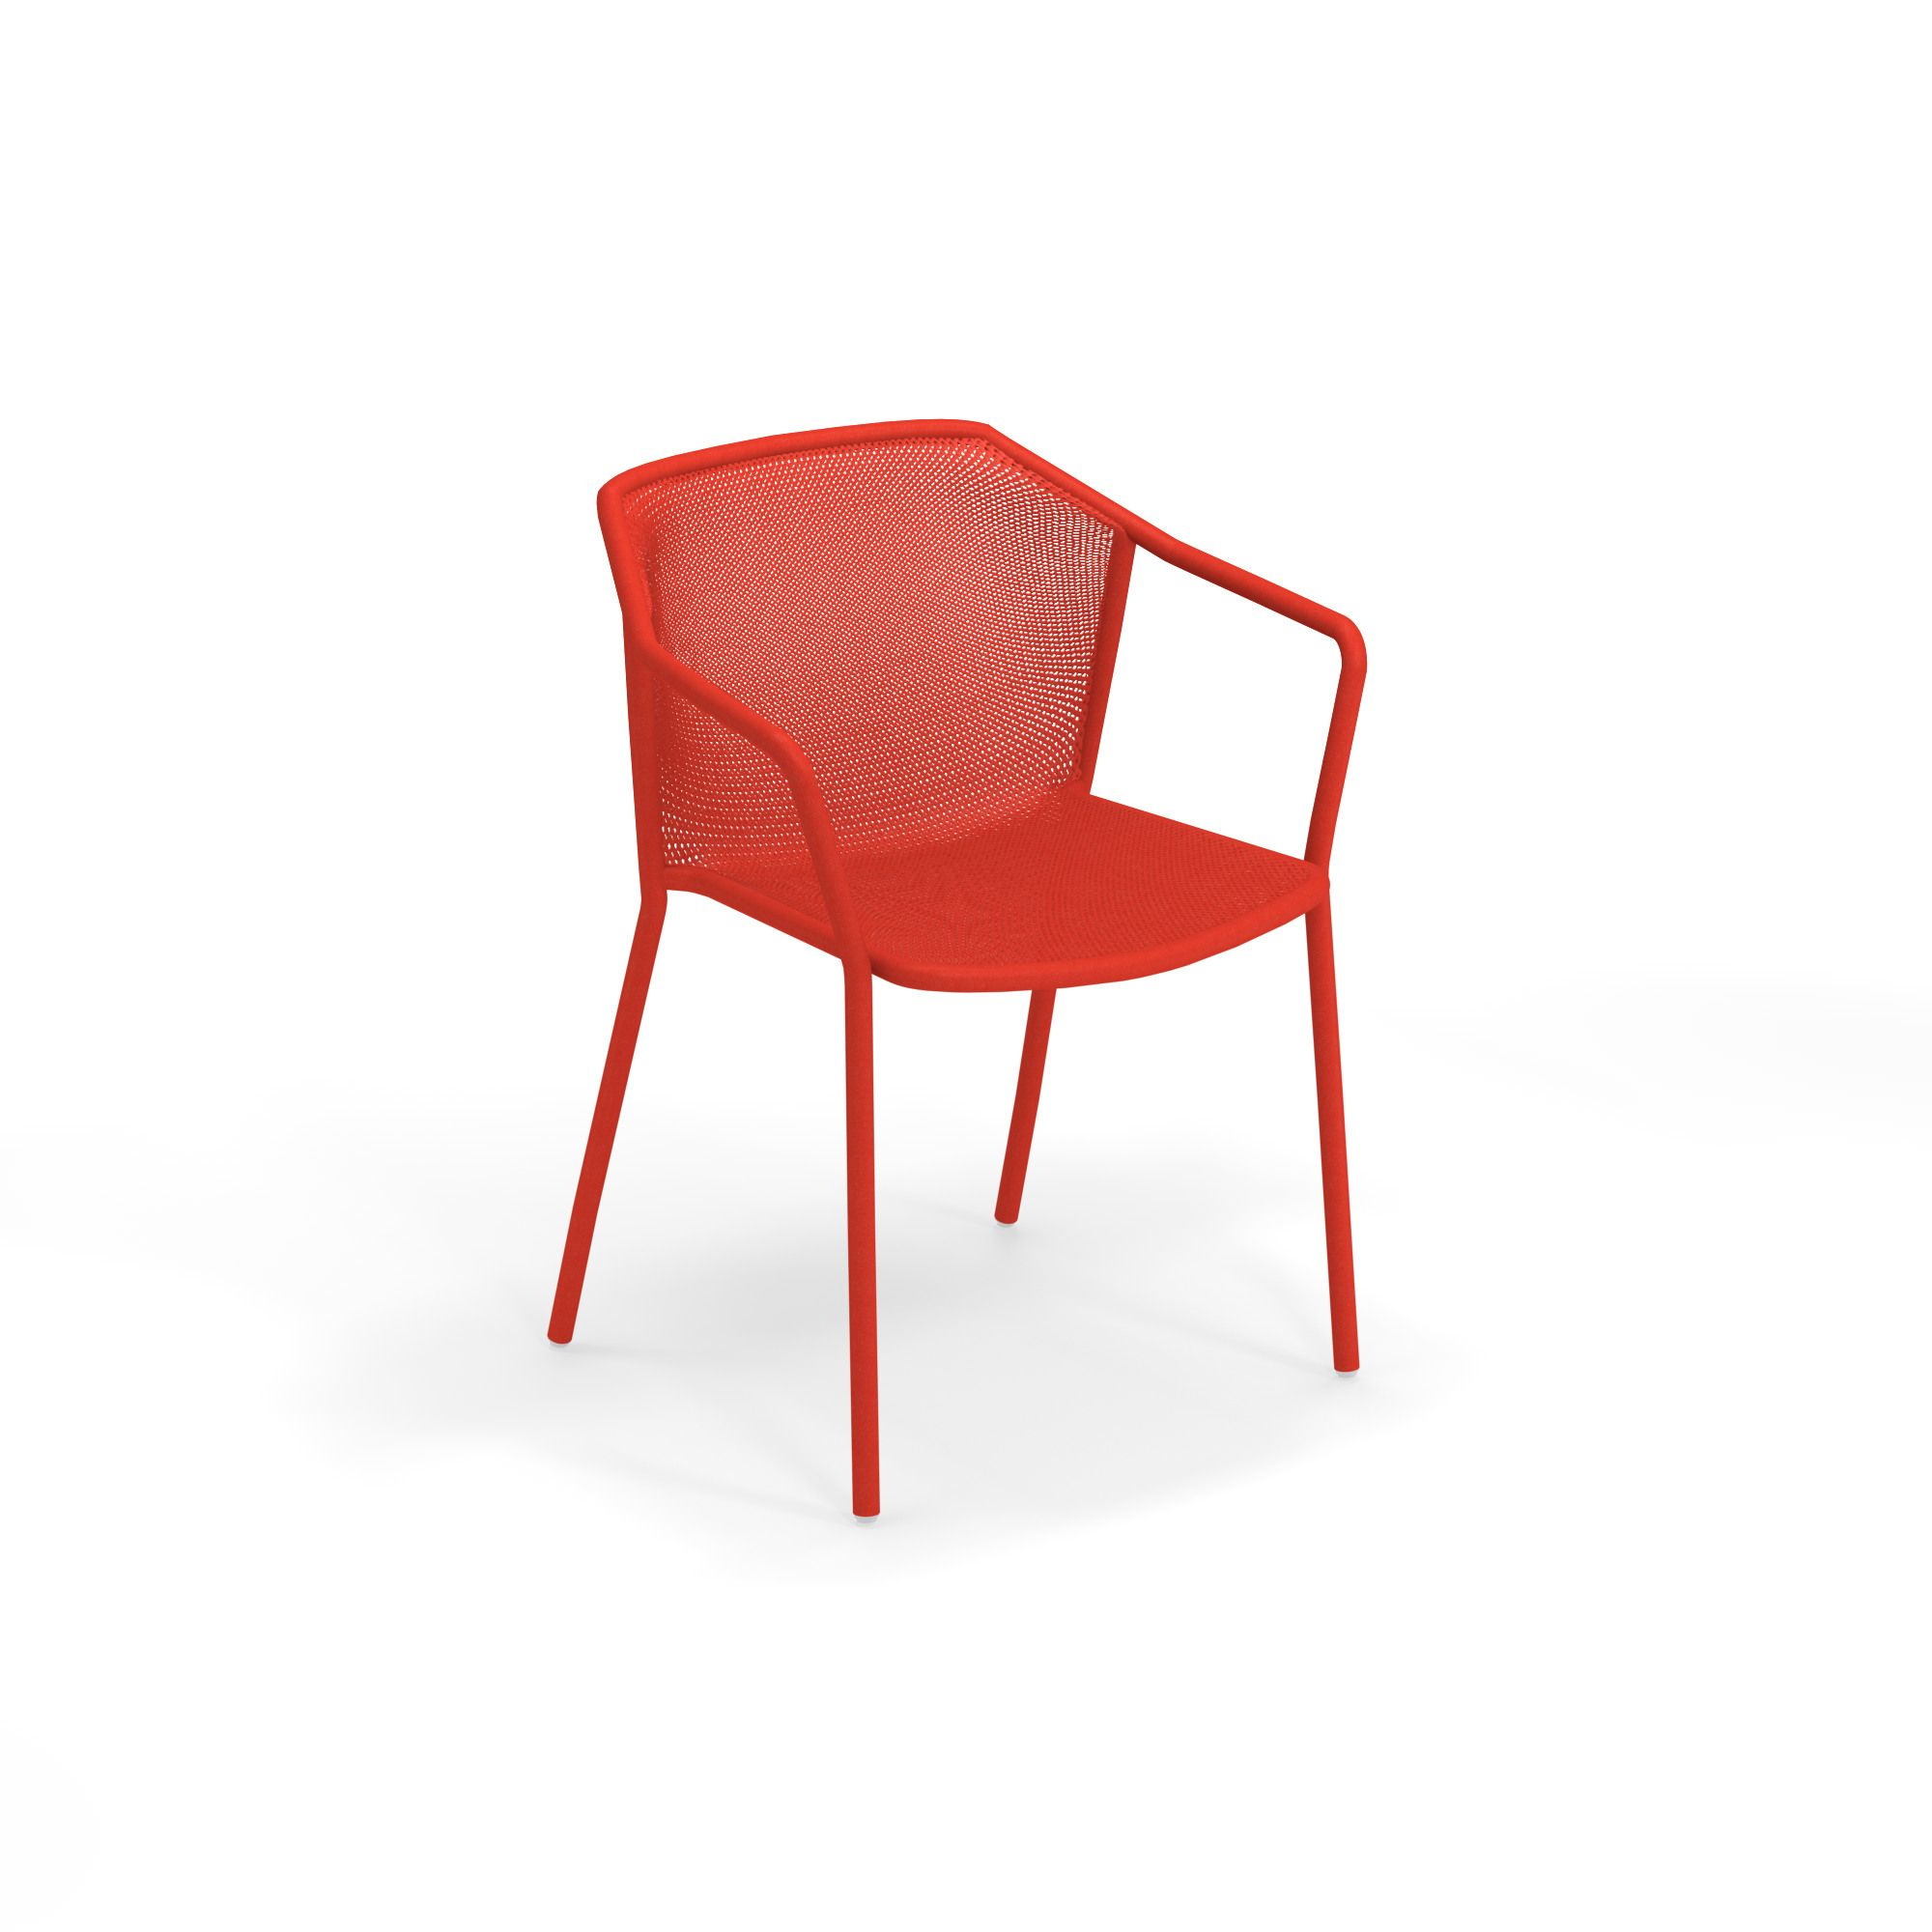 emuamericas, llc 522-50 chair, armchair, stacking, outdoor